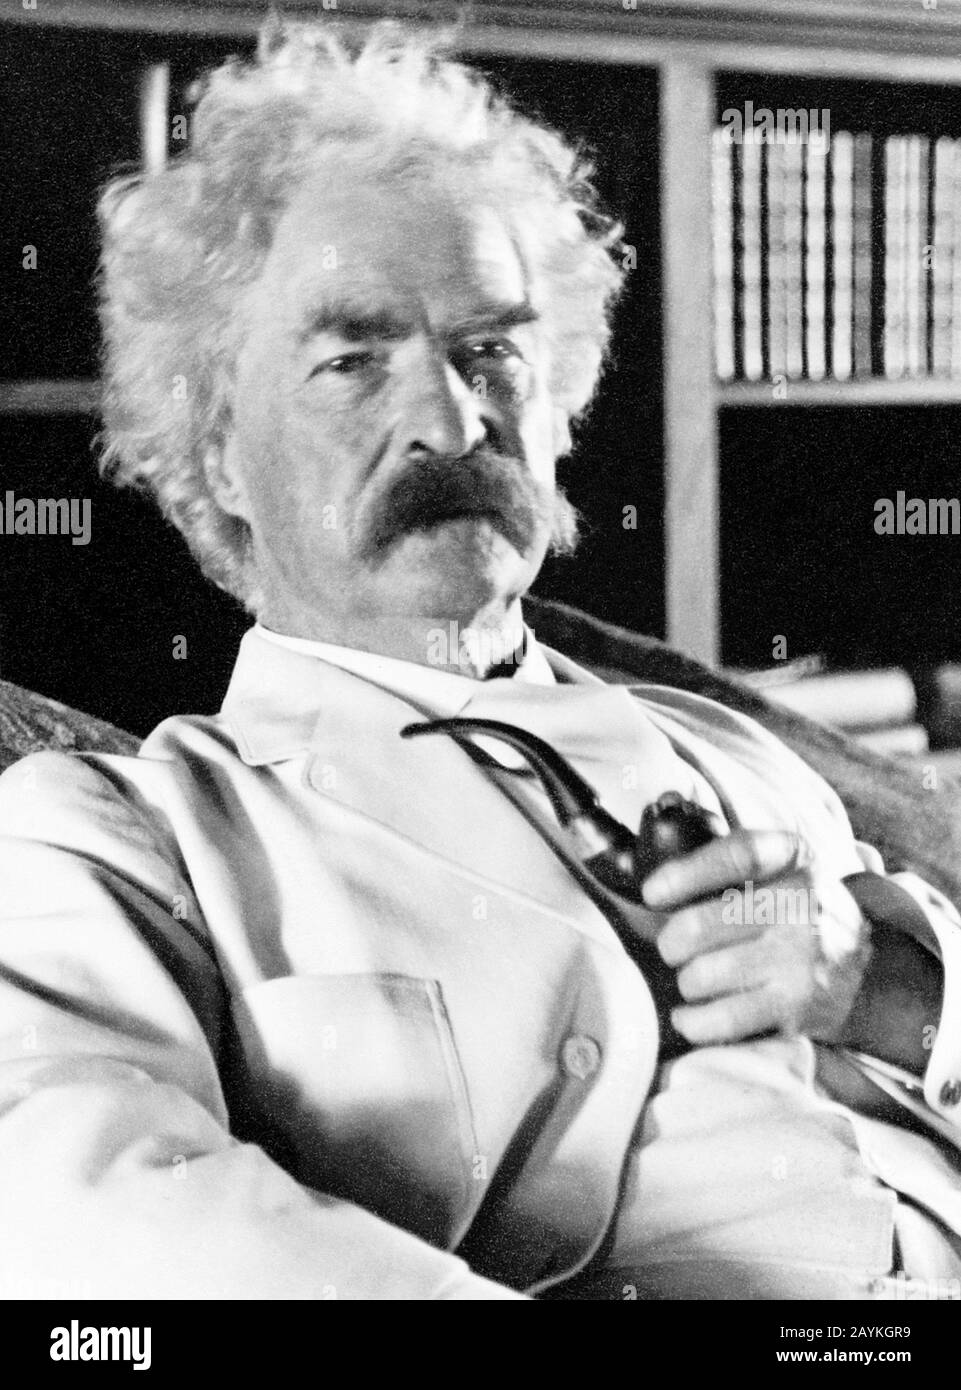 Vintage portrait photo of American writer and humourist Samuel Langhorne Clemens (1835 – 1910), better known by his pen name of Mark Twain. Photo circa 1905. Stock Photo